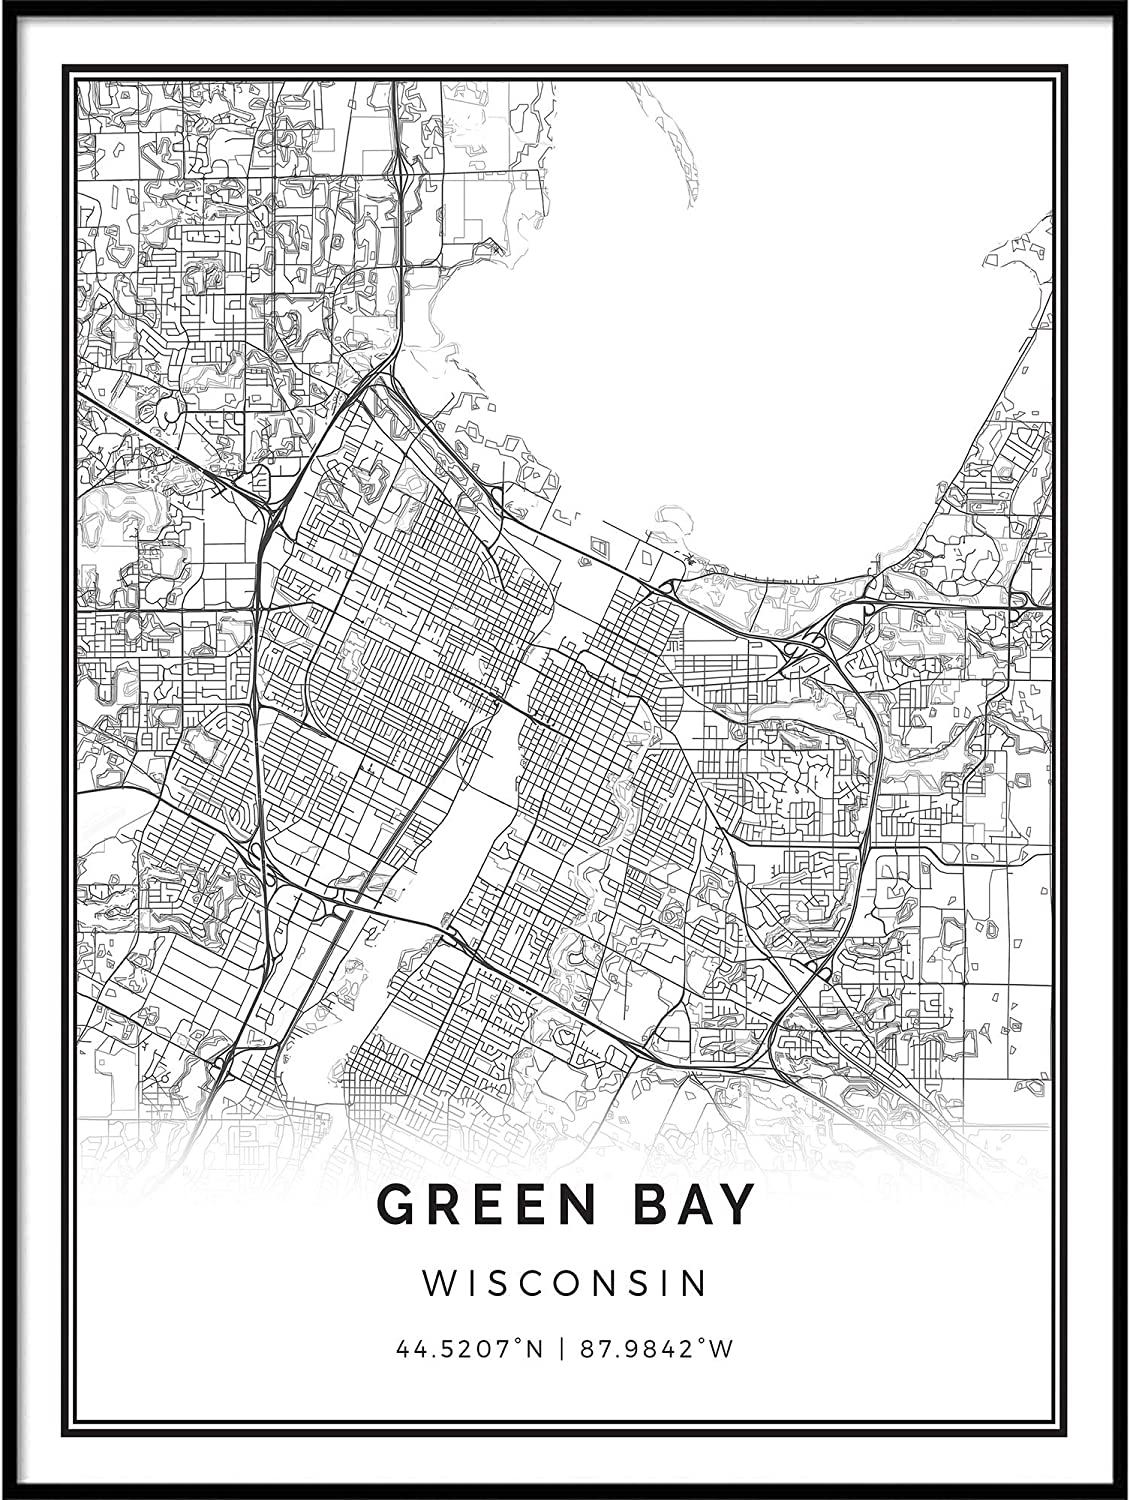 Amazon Com Squareious Green Bay Map Poster Print Modern Black And White Wall Art Scandinavian Home Decor Wisconsin City Prints Artwork Fine Art Posters 24x36 Posters Prints Download a free preview or high quality adobe illustrator ai, eps, pdf and high resolution jpeg versions. squareious green bay map poster print